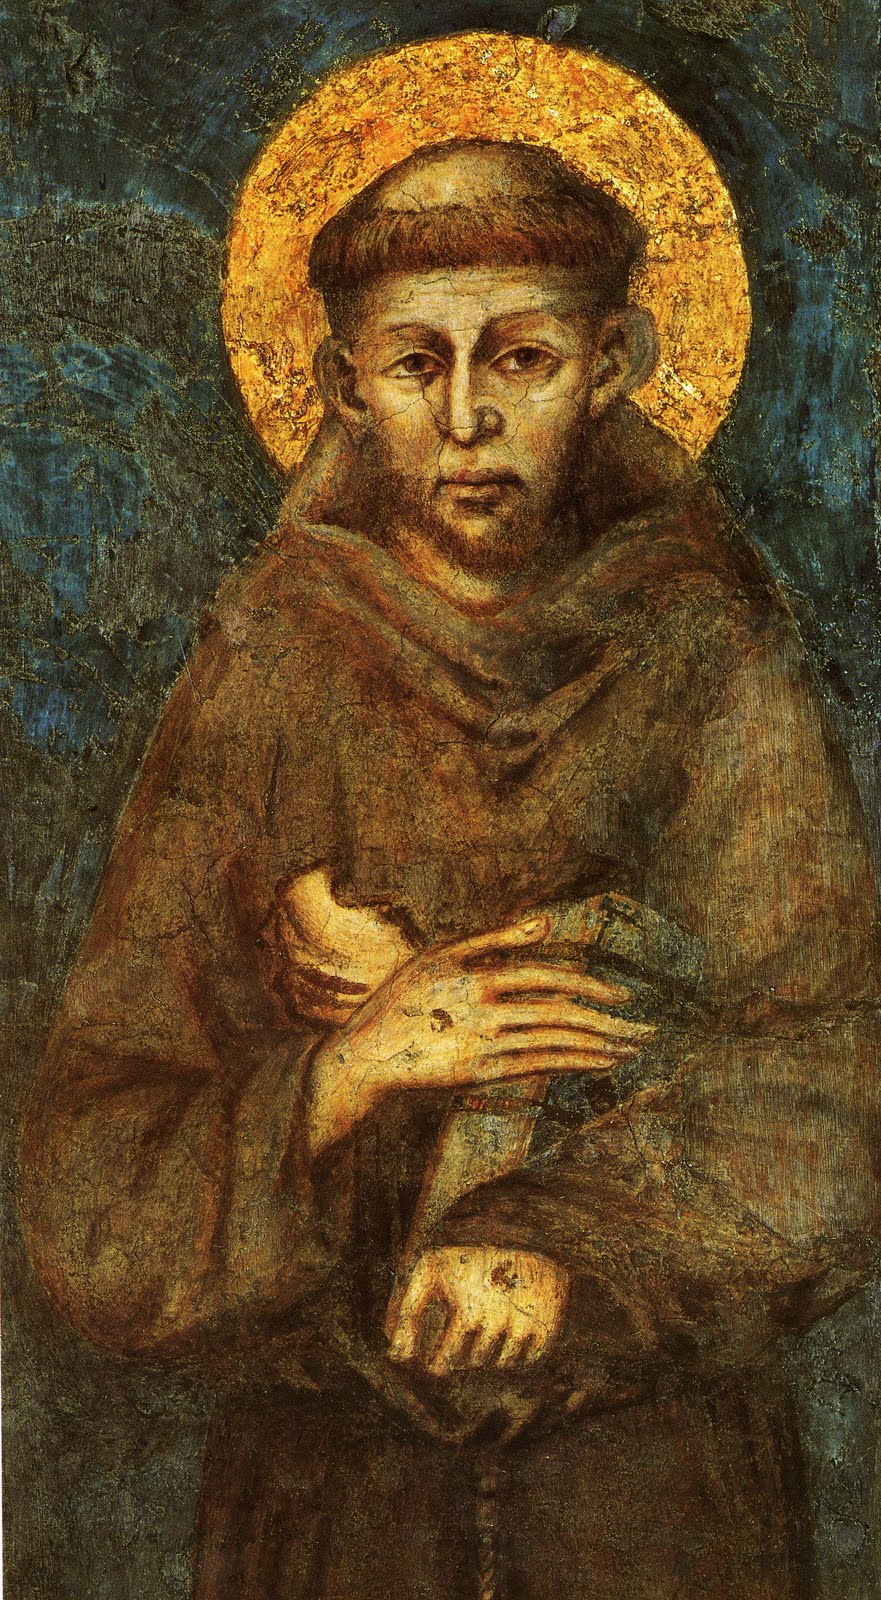 The Calling of St. Francis: Part 2 – ADHD Scholar